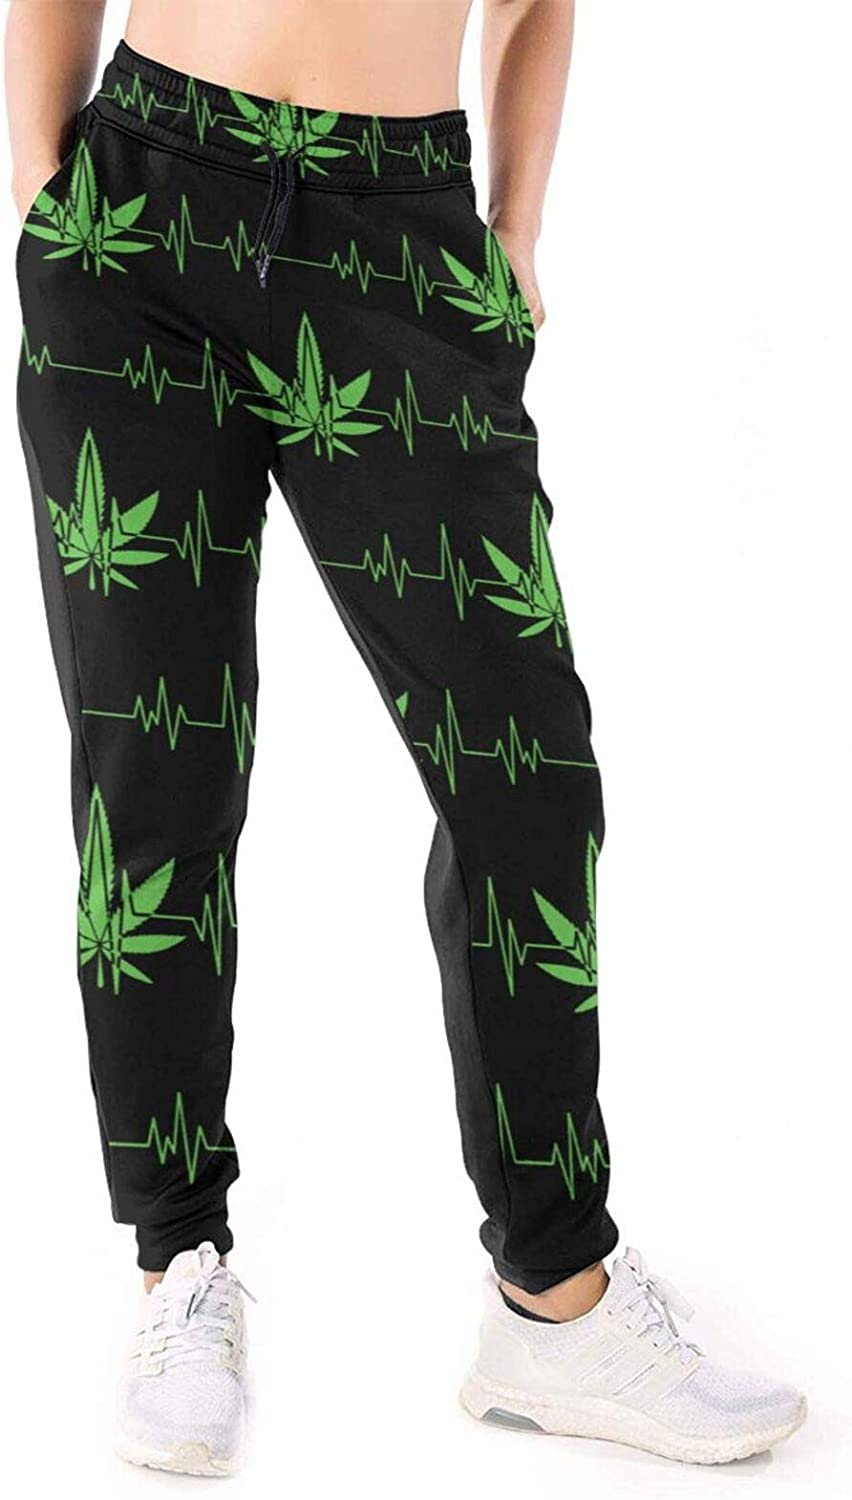 Women Joggers Pants Weed Marijuana Green Leaf Heartbeat Athletic Sweatpants with Pockets Casual Trousers Baggy